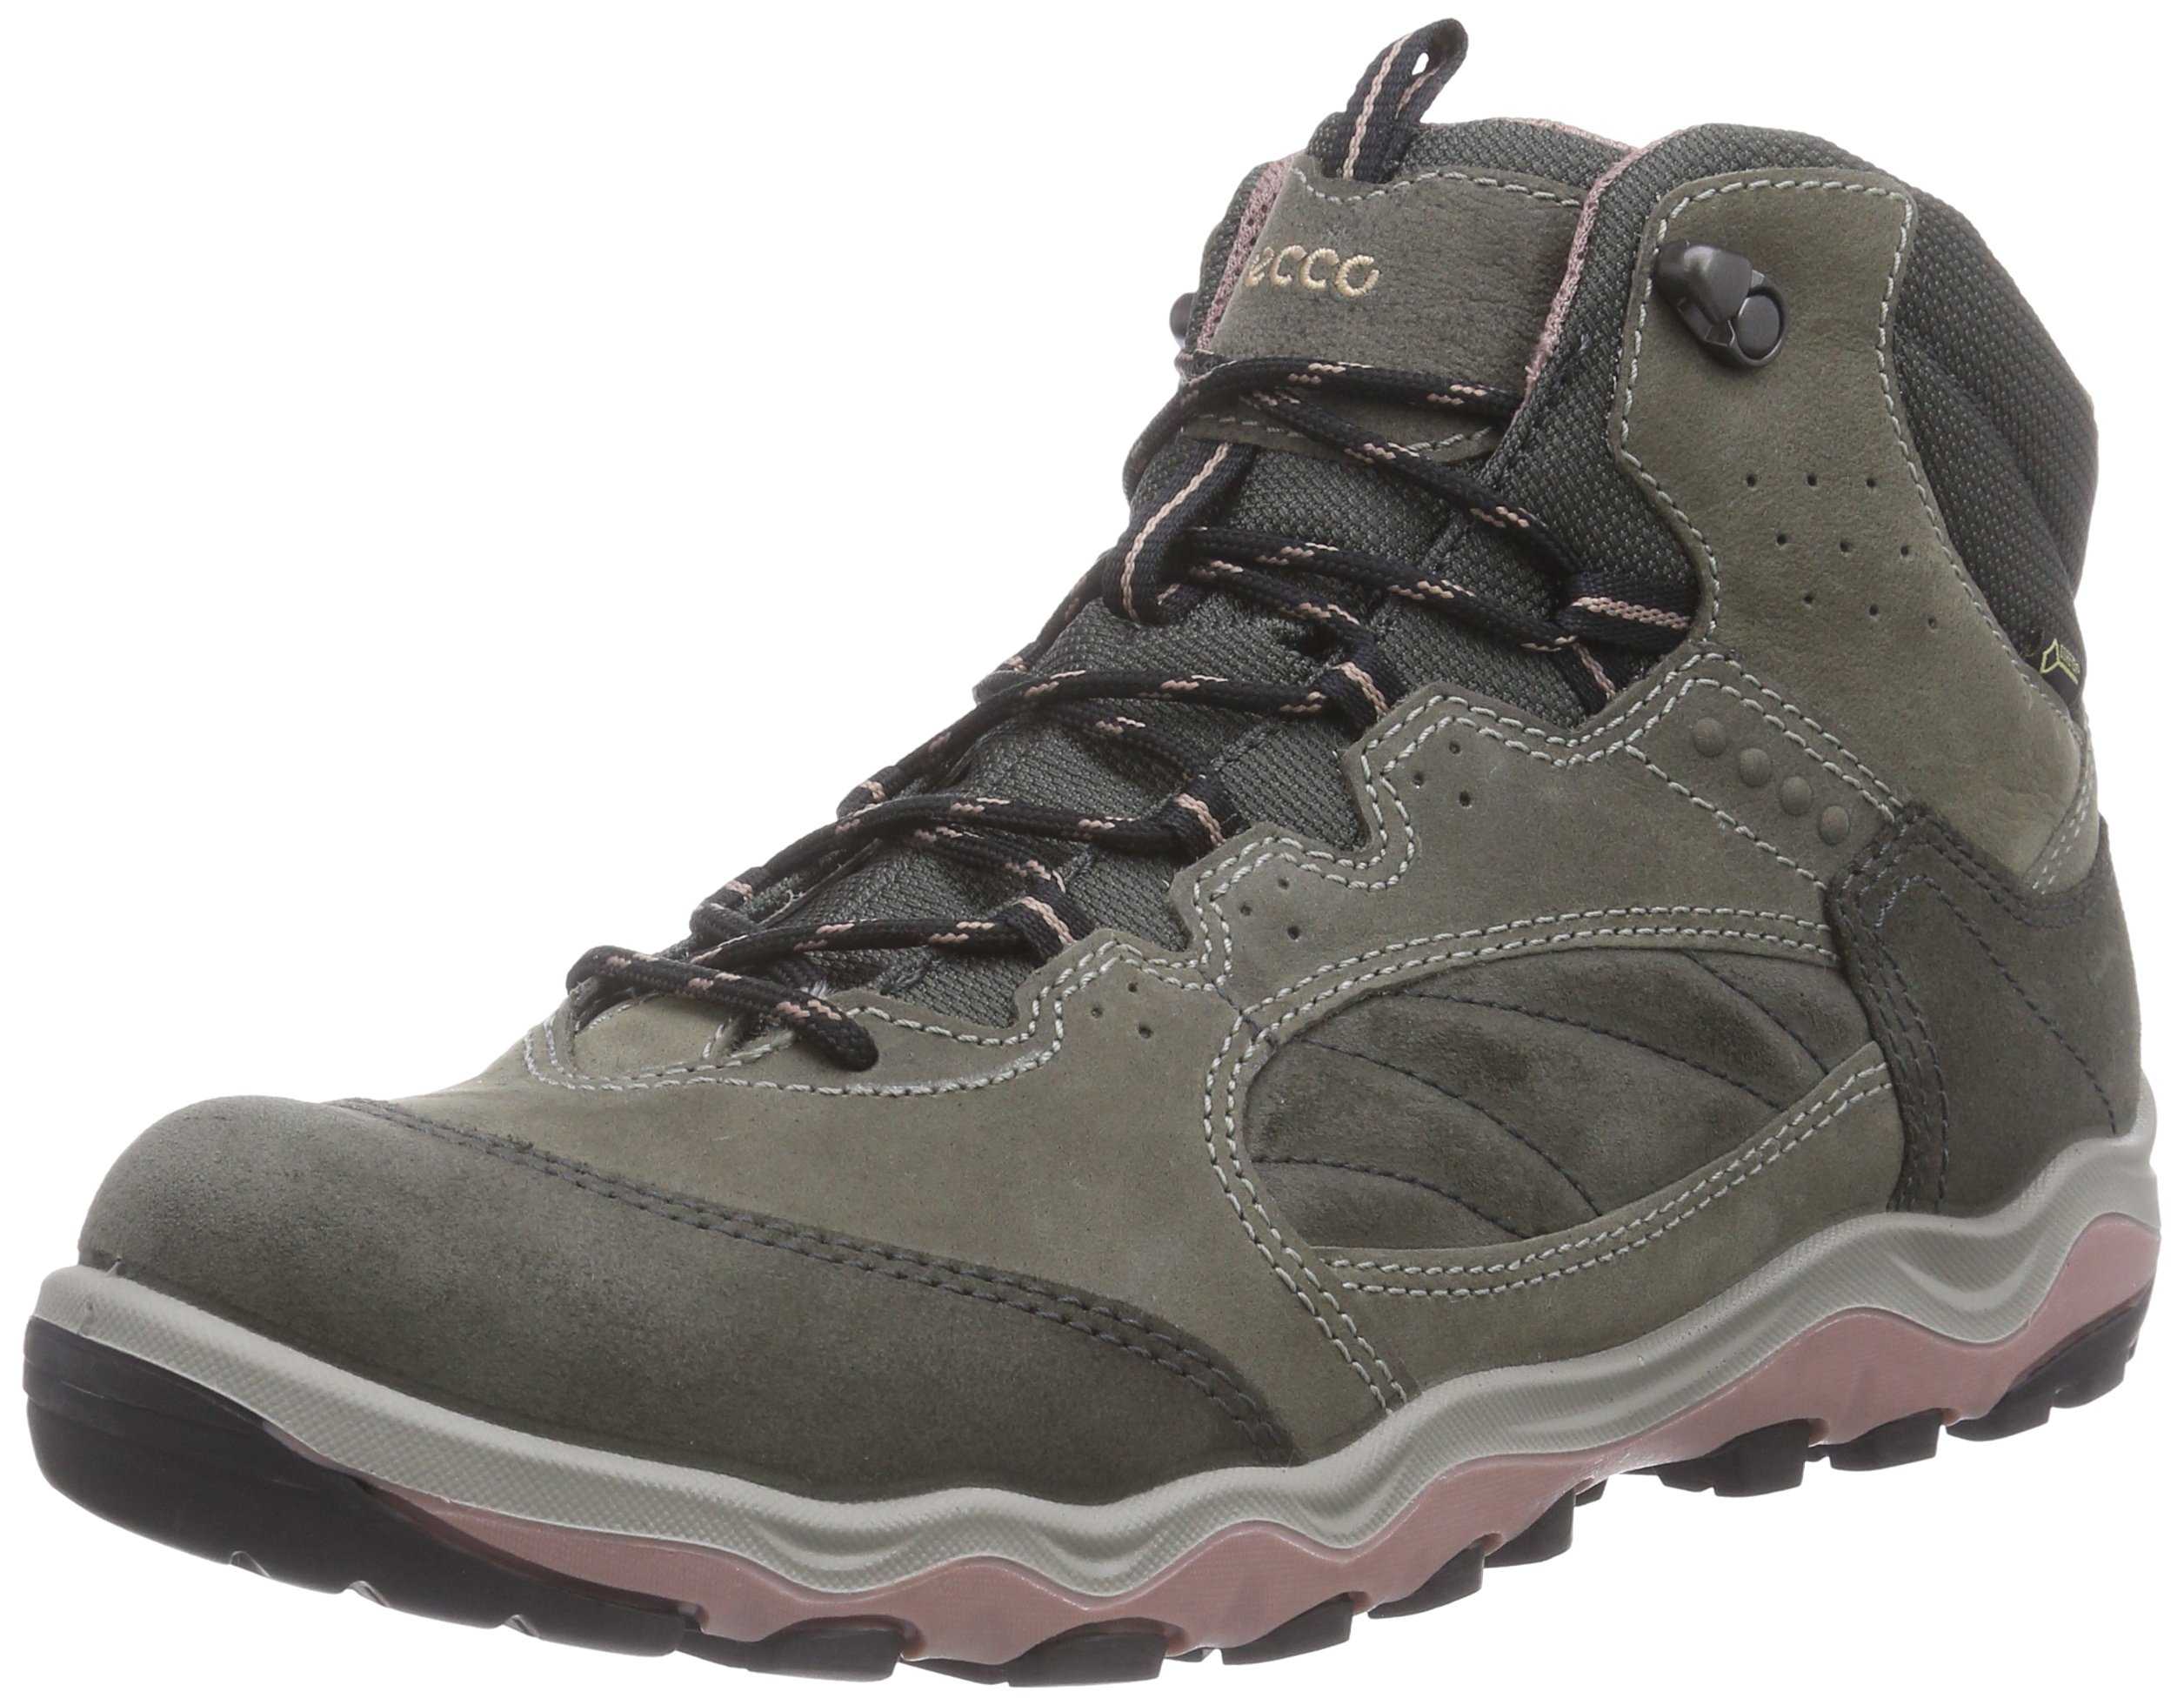 ECCO Women's Ulterra Mid GTX Hiking Boot Waterpoof Climate Control Dry (38 (US 7-7.5))